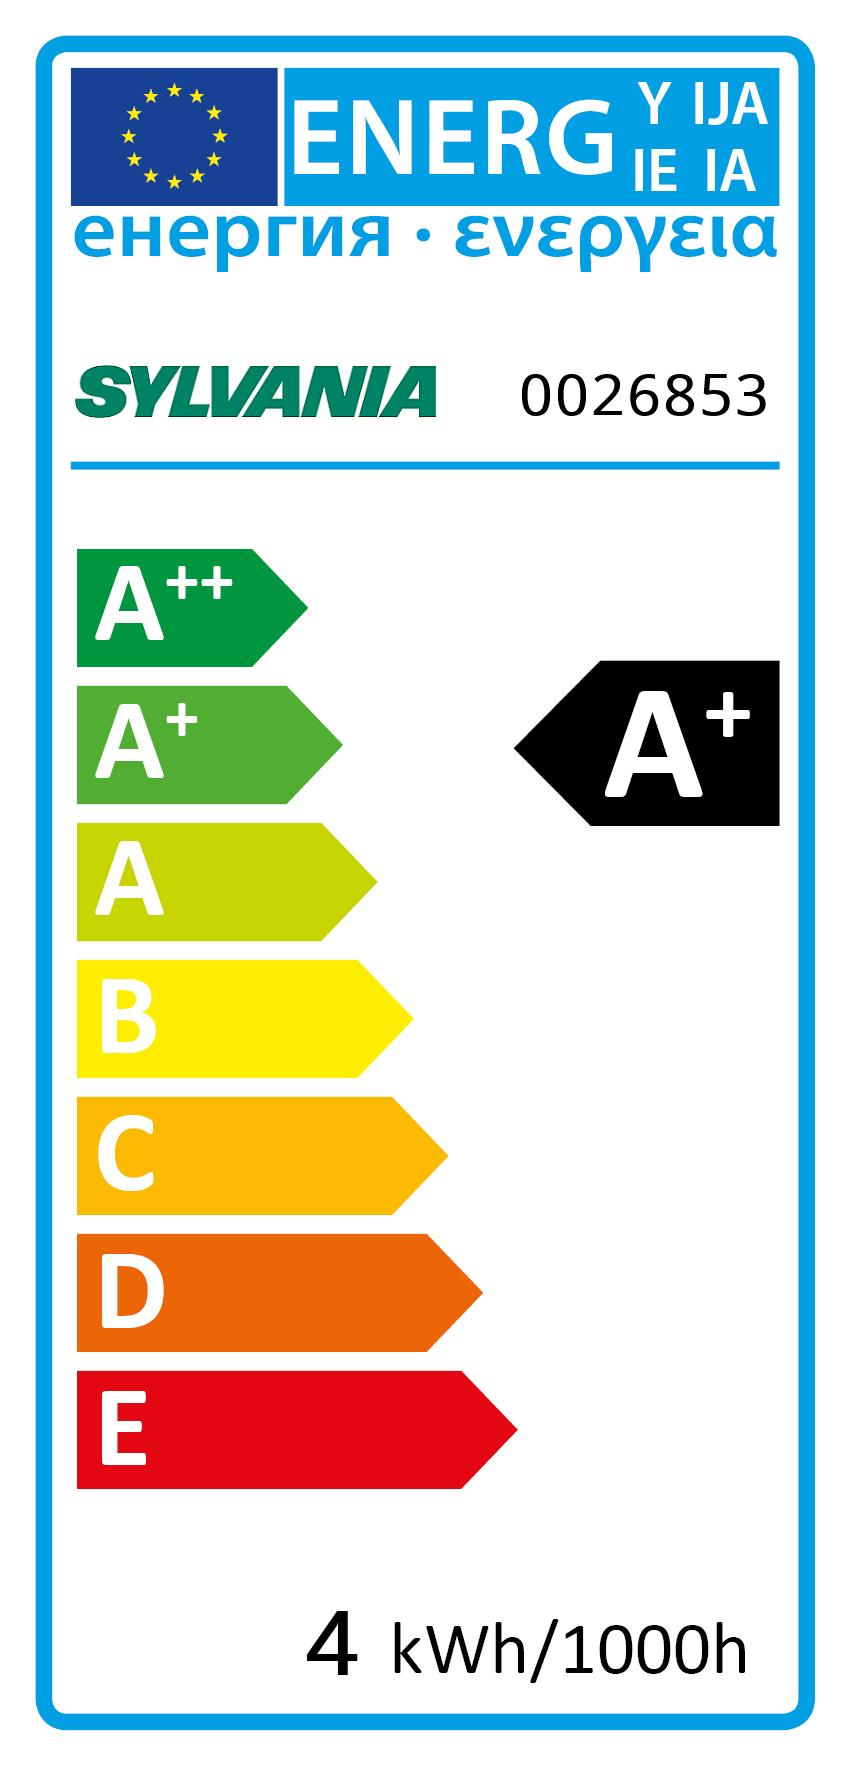 Energy Label for 0026853